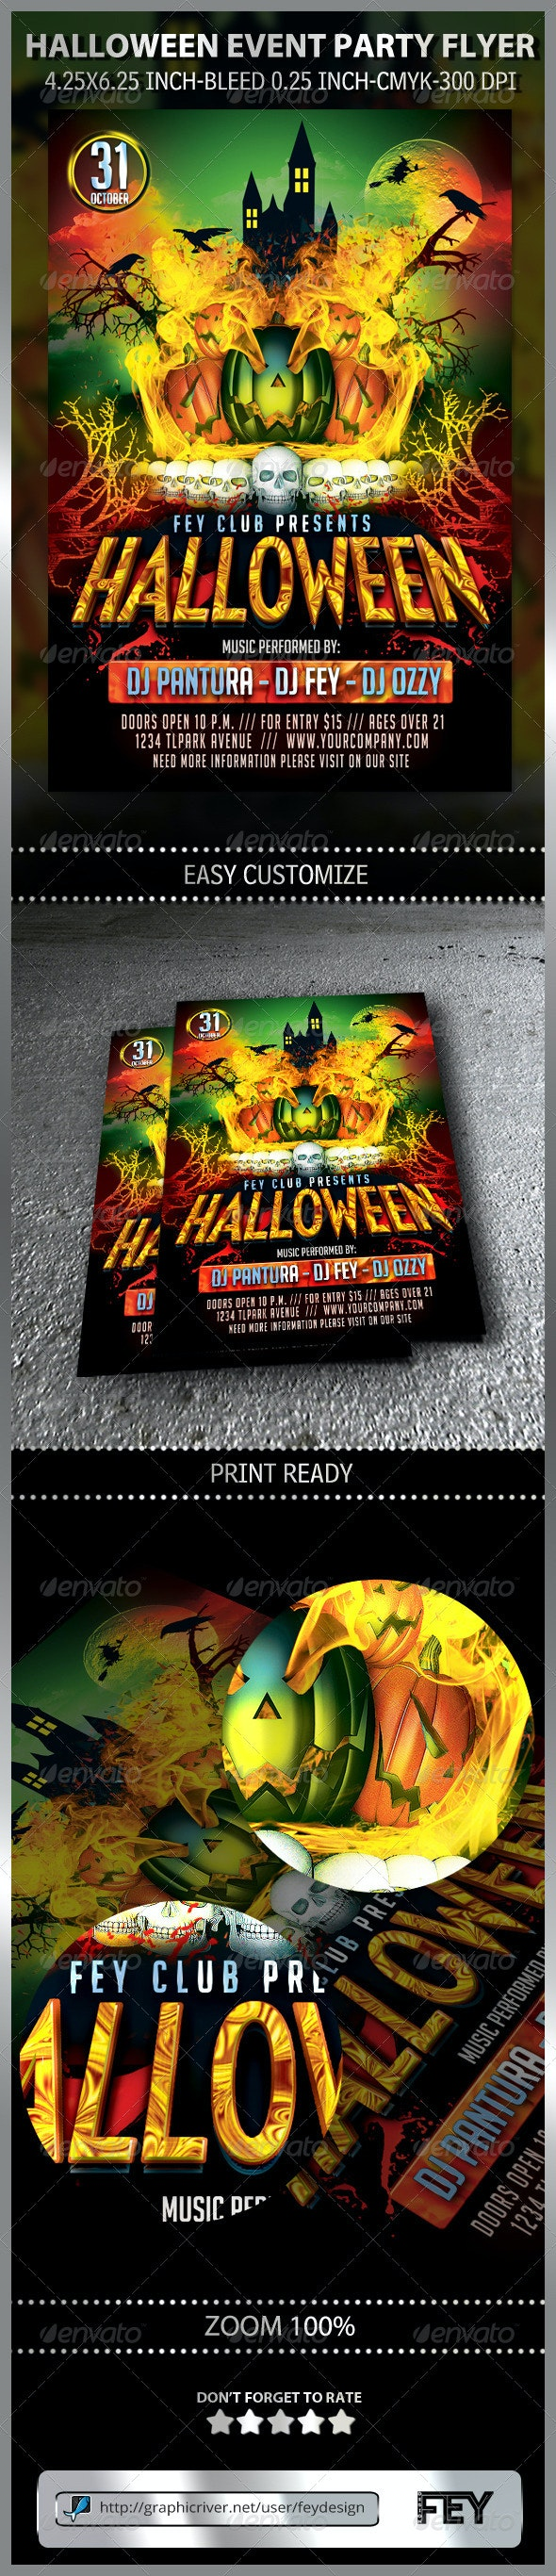 Halloween Event Party Flyer - Events Flyers